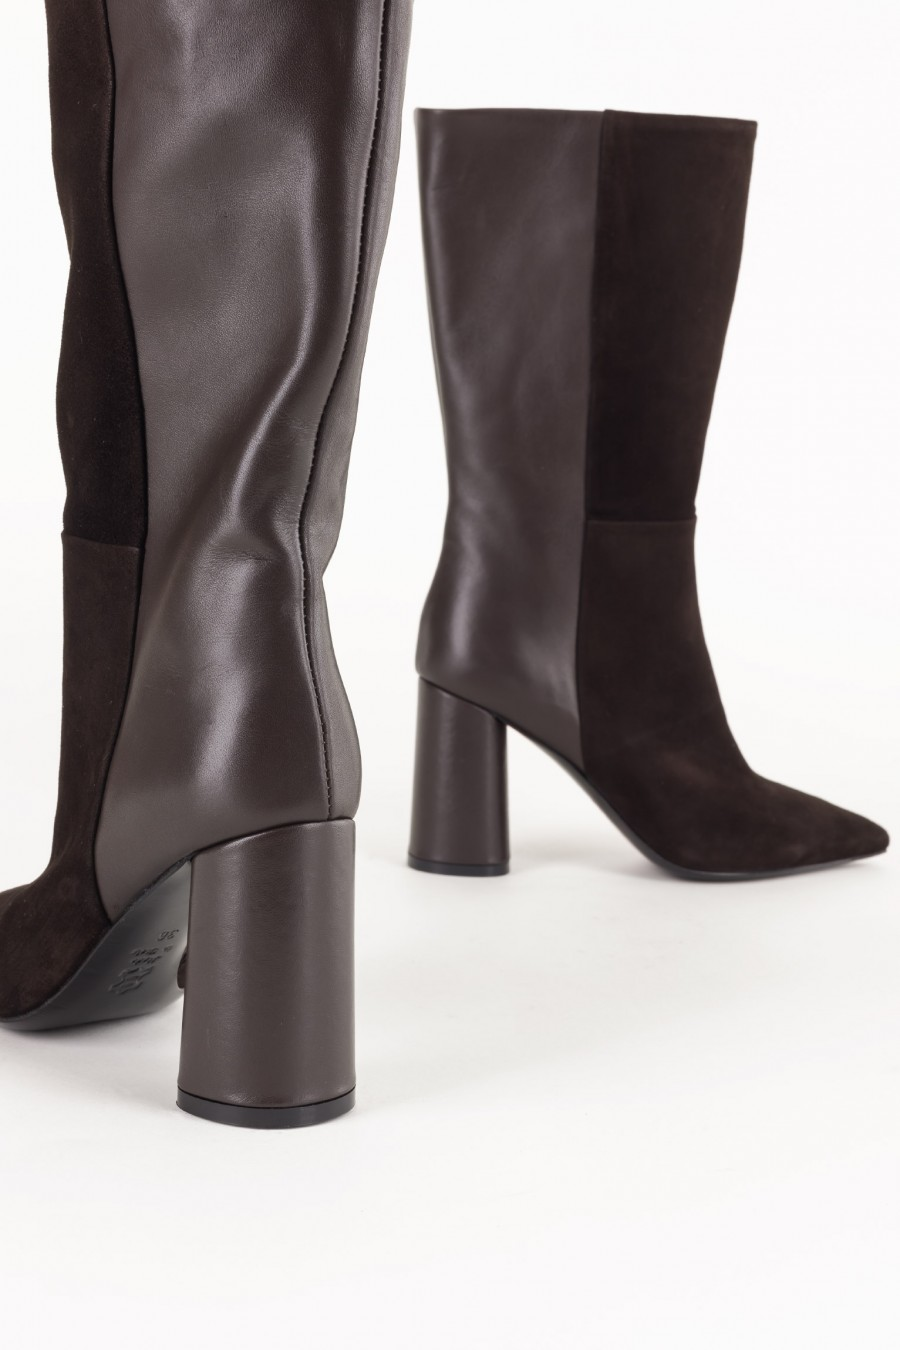 Elegant brown boots